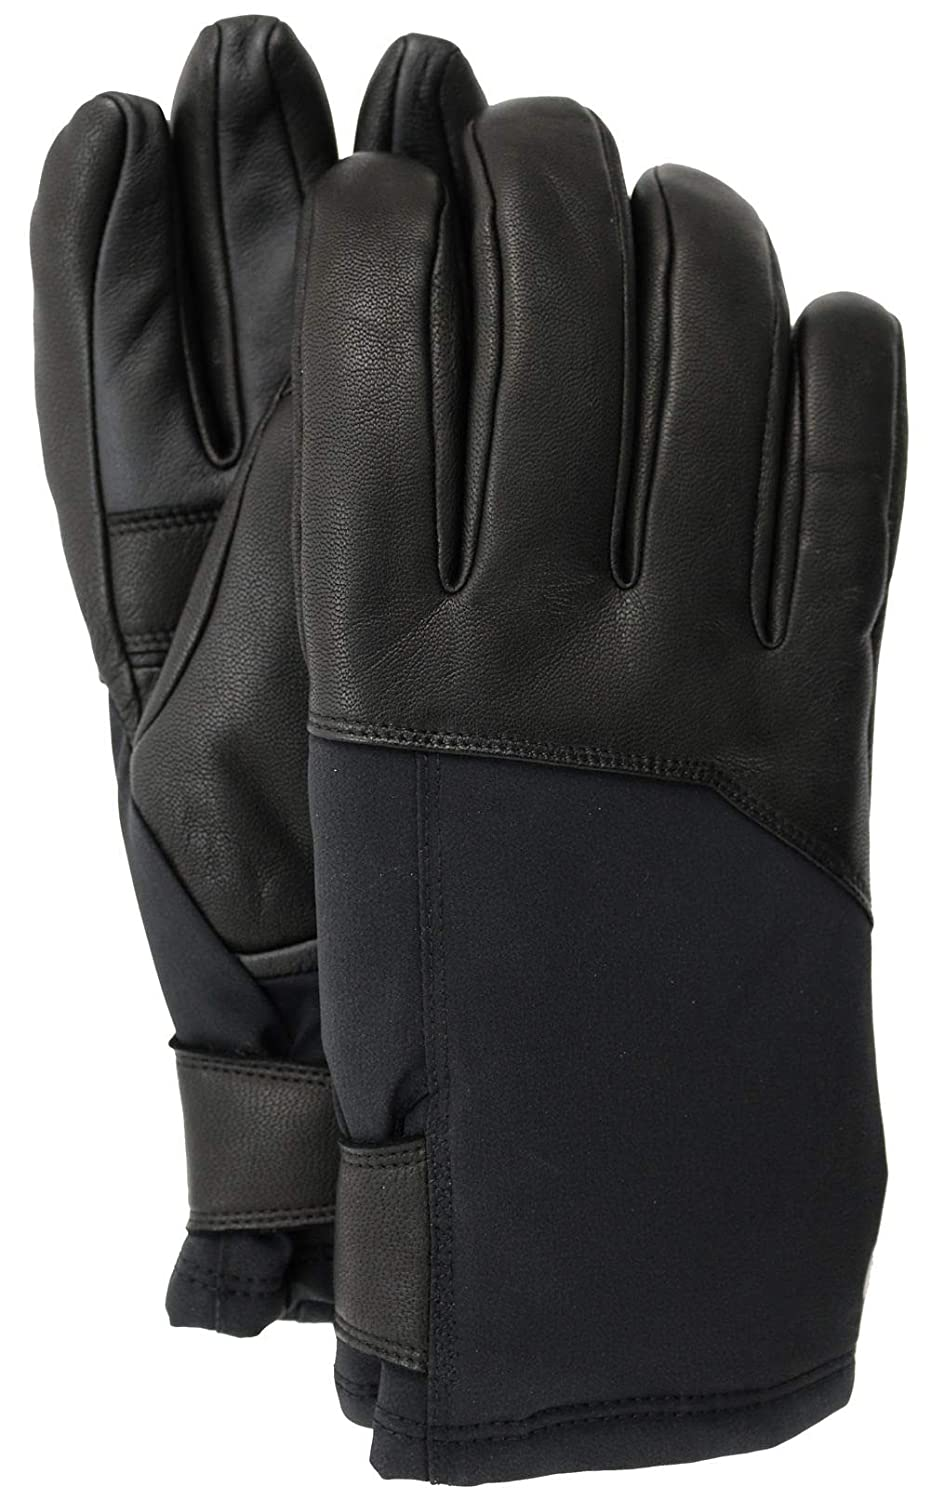 cf479891be24c UGG Mens Performance Glove, Black, Size Large at Amazon Men's Clothing  store: